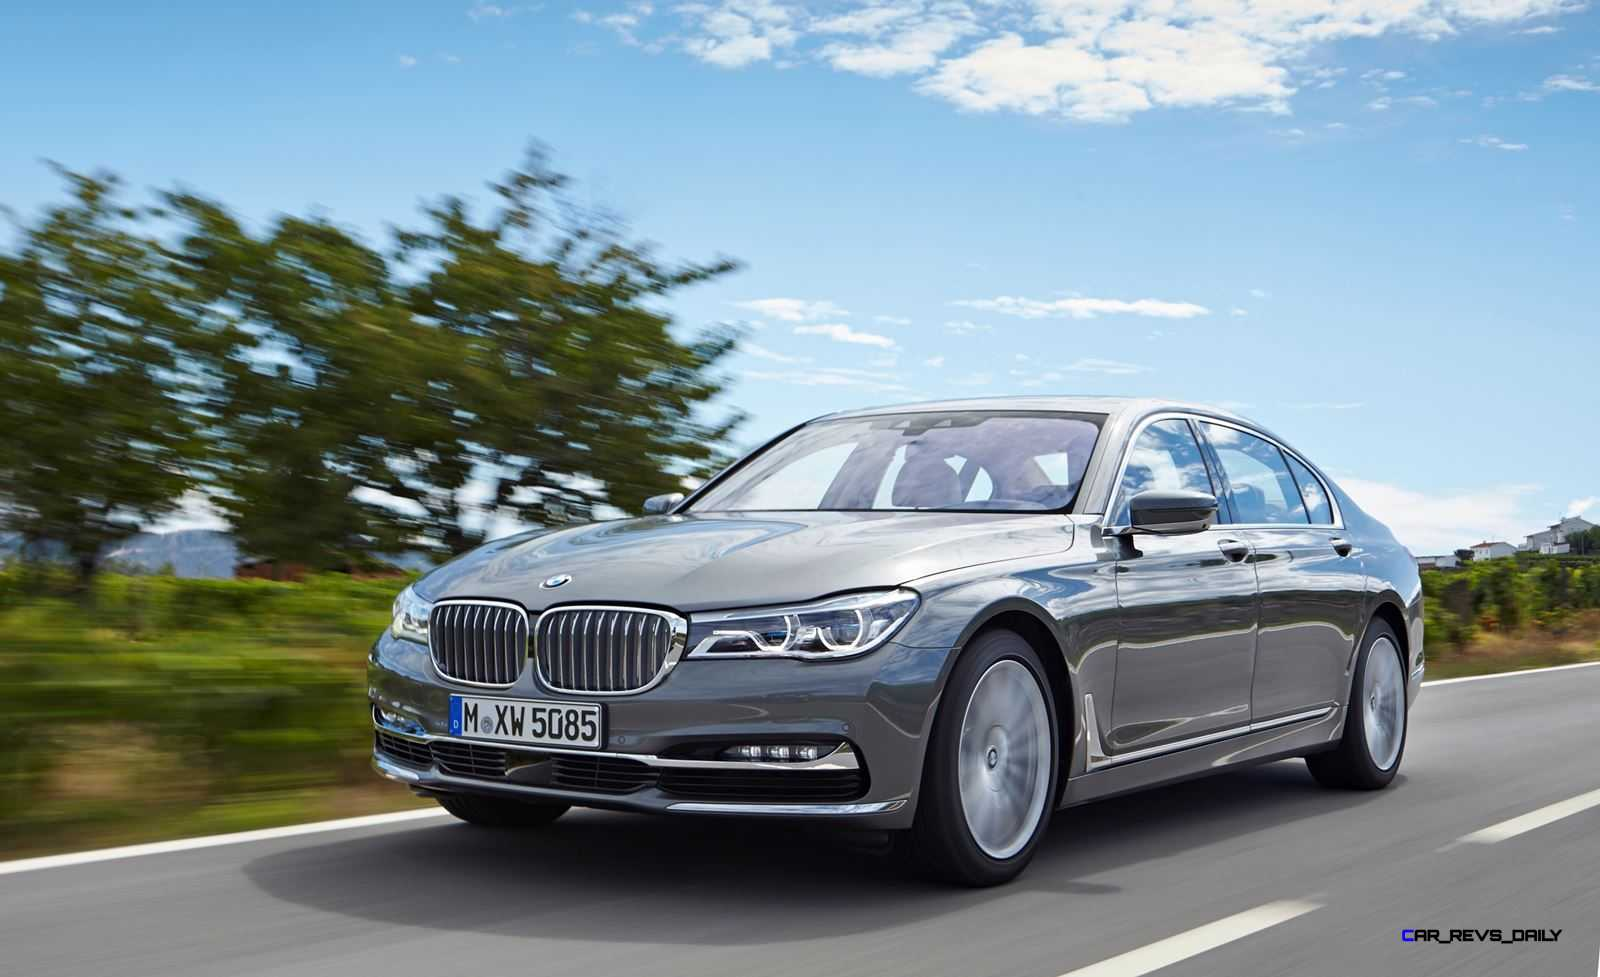 analysis bmw 750li A review of the used 2007 bmw 7-series including ratings, specs, fuel economy, pros/cons, and more at automotivecom.